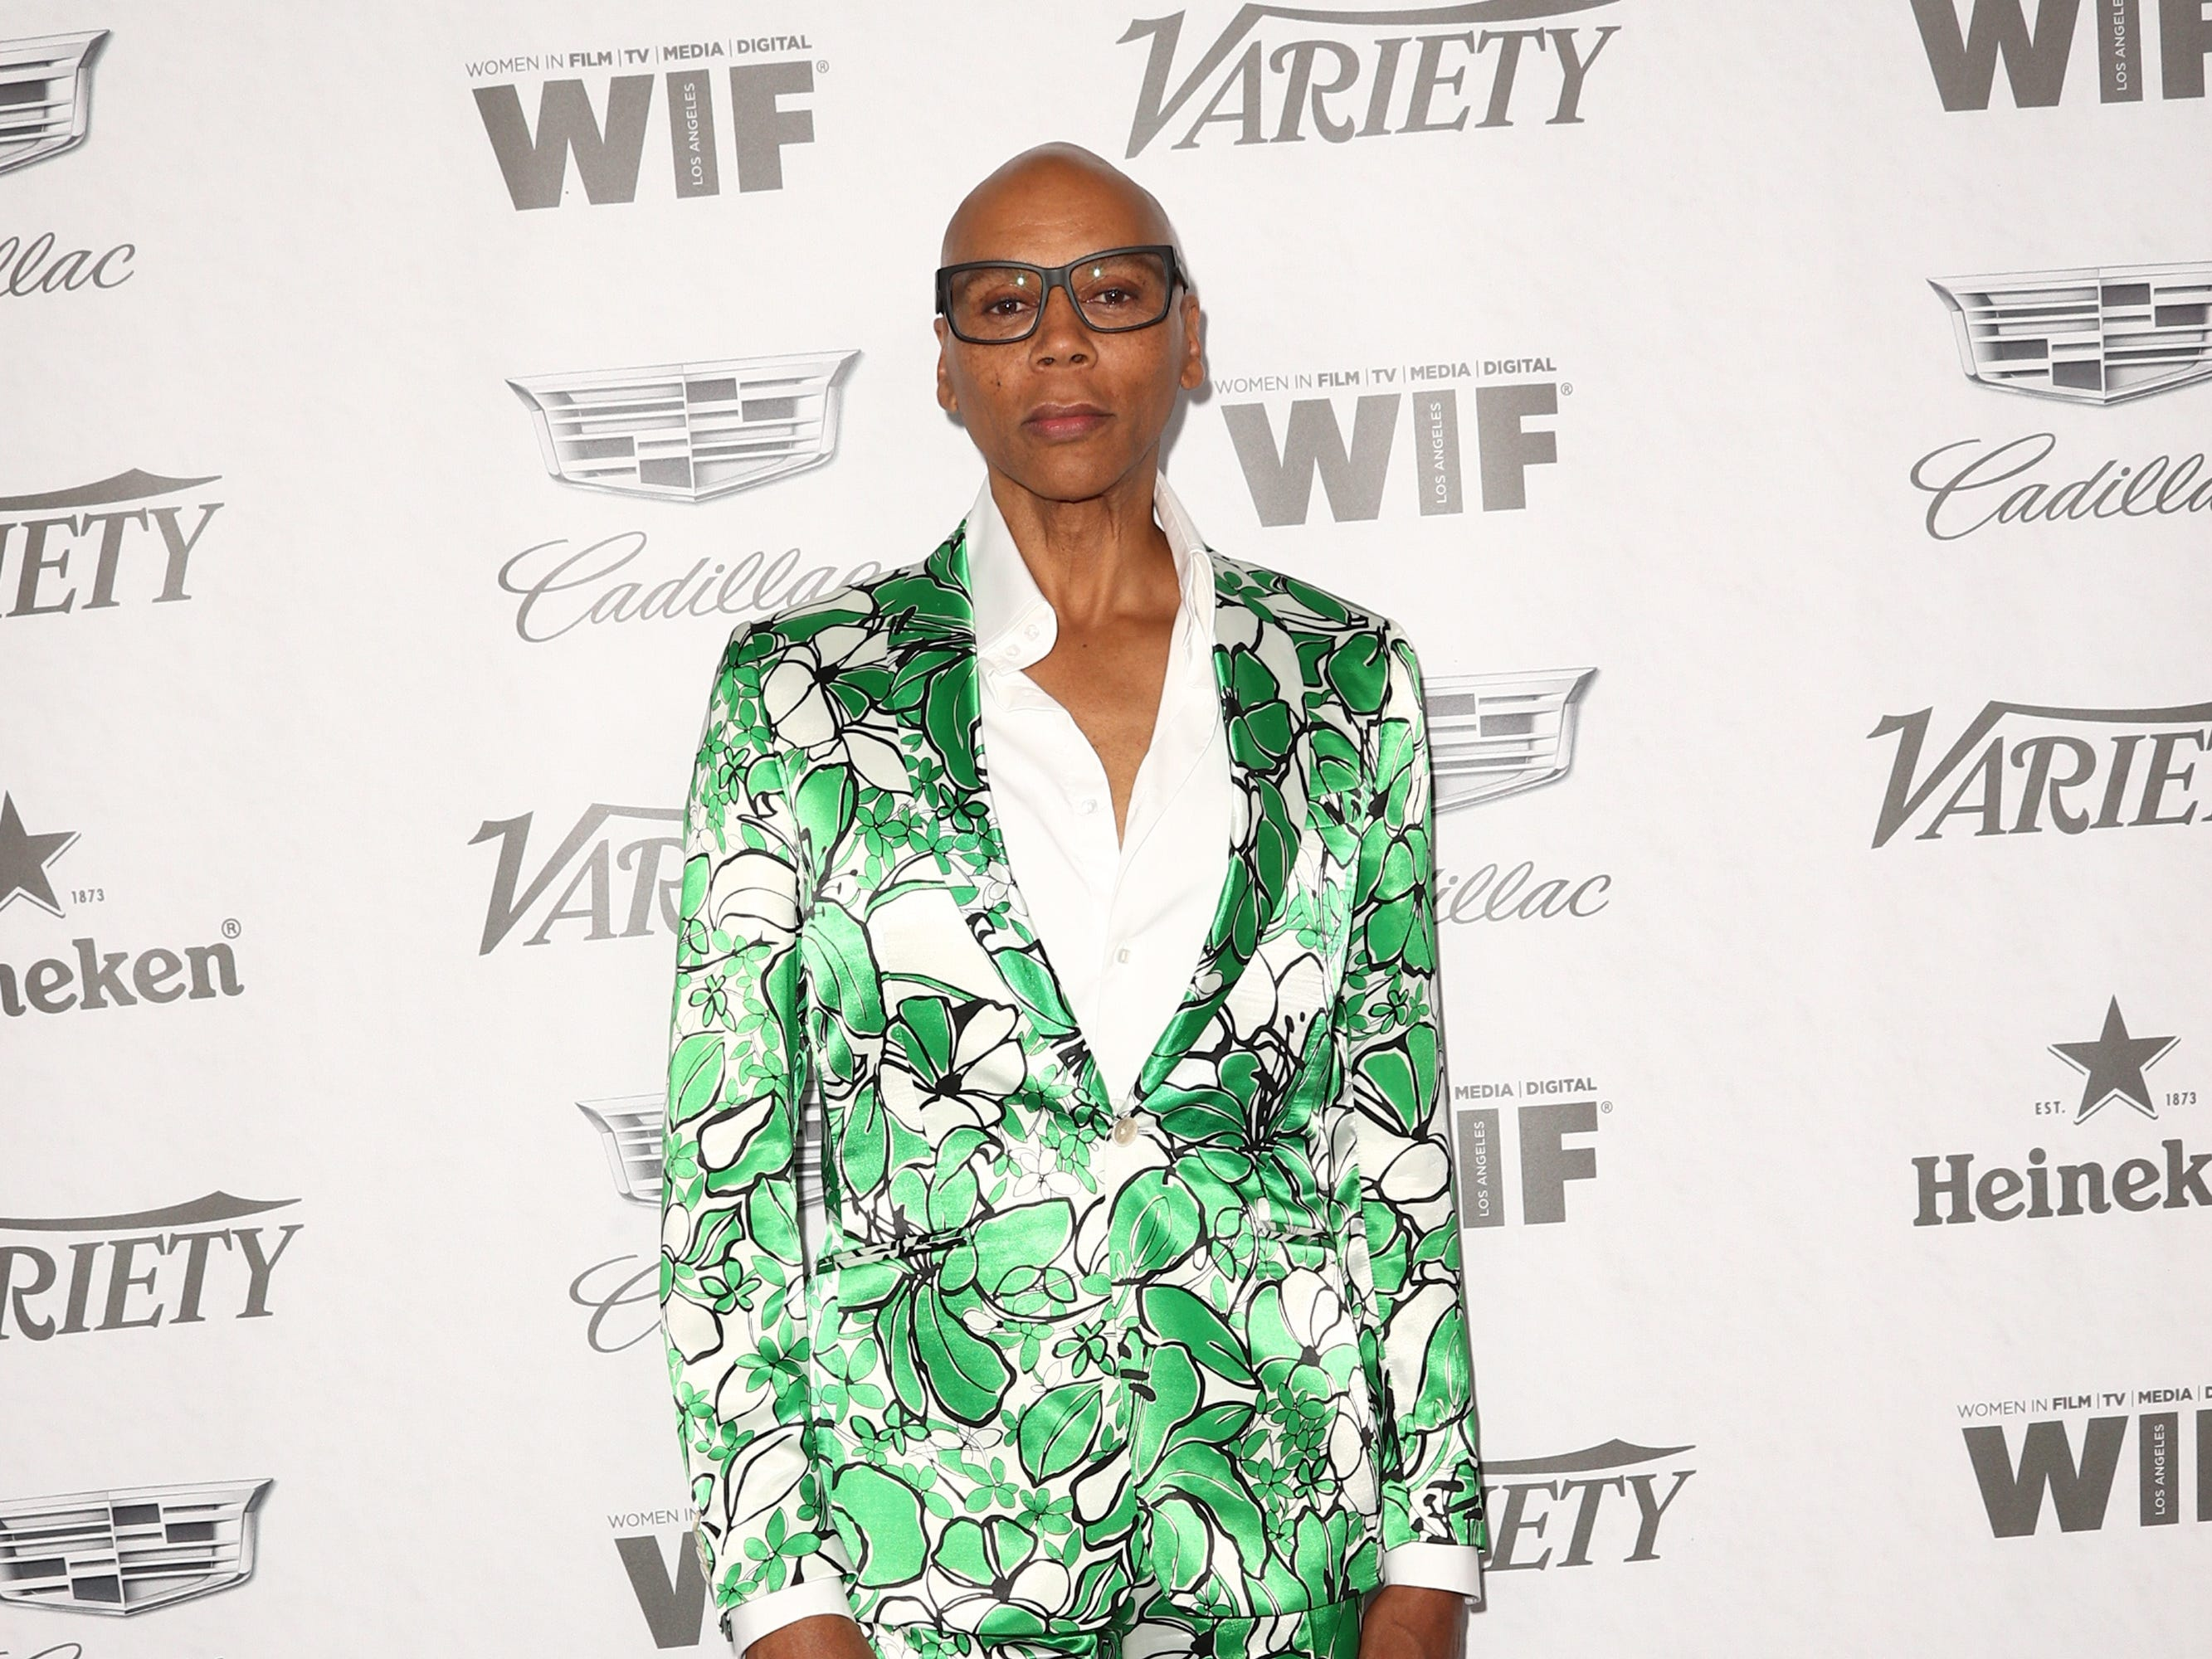 WEST HOLLYWOOD, CA - SEPTEMBER 15:  RuPaul attends Variety and Women in Film's 2018 Pre-Emmy Celebration at Cecconi's on September 15, 2018 in West Hollywood, California.  (Photo by Frederick M. Brown/Getty Images) ORG XMIT: 775218358 ORIG FILE ID: 1033997564